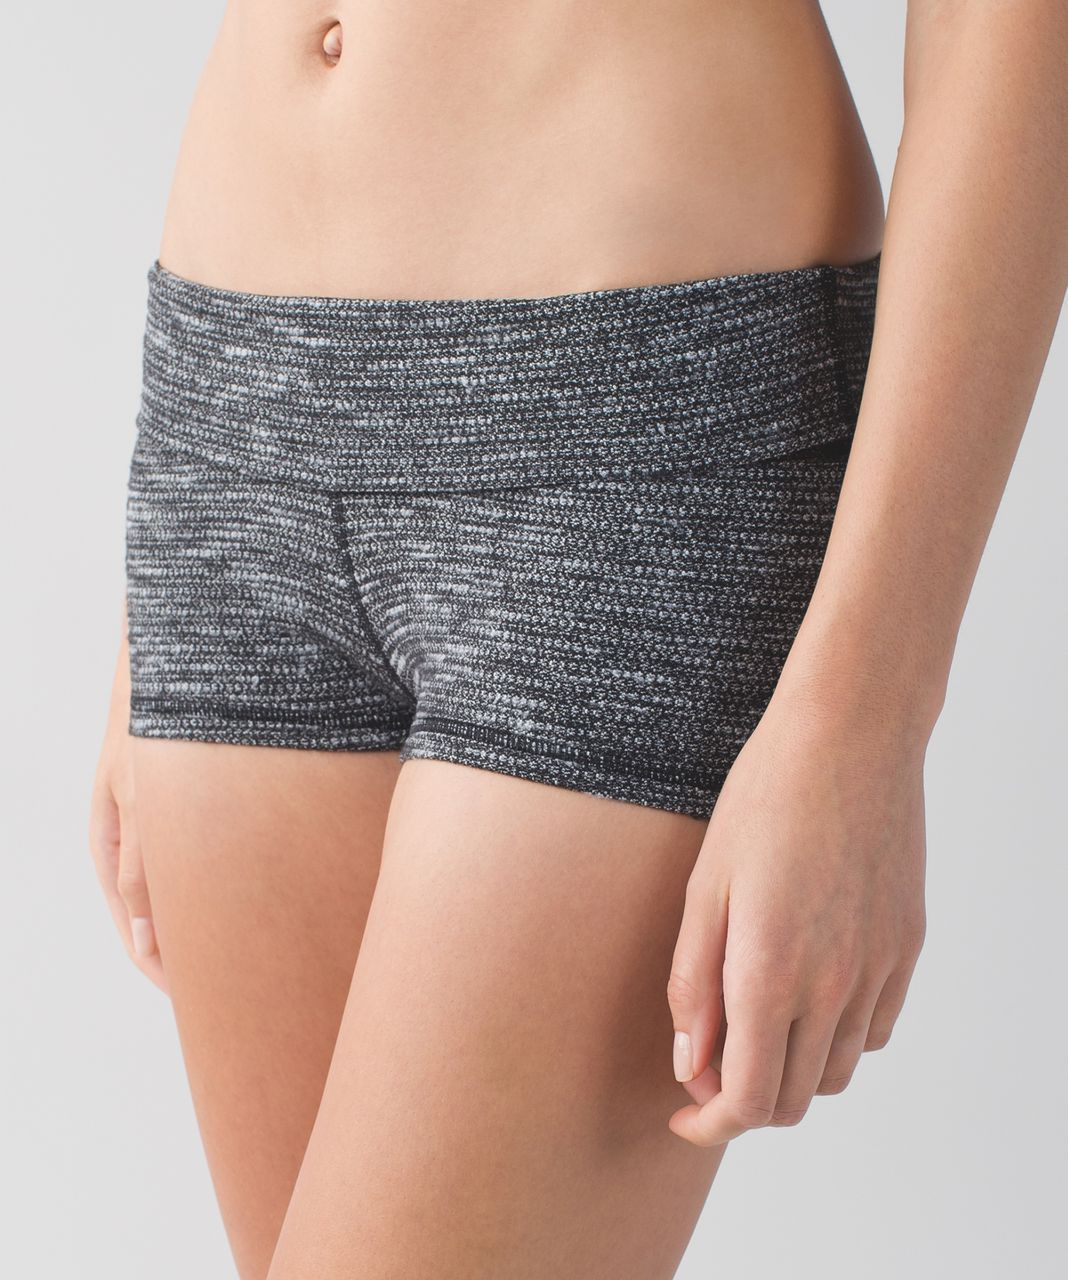 Lululemon Boogie Short (Roll Down) - Coco Pique Black White